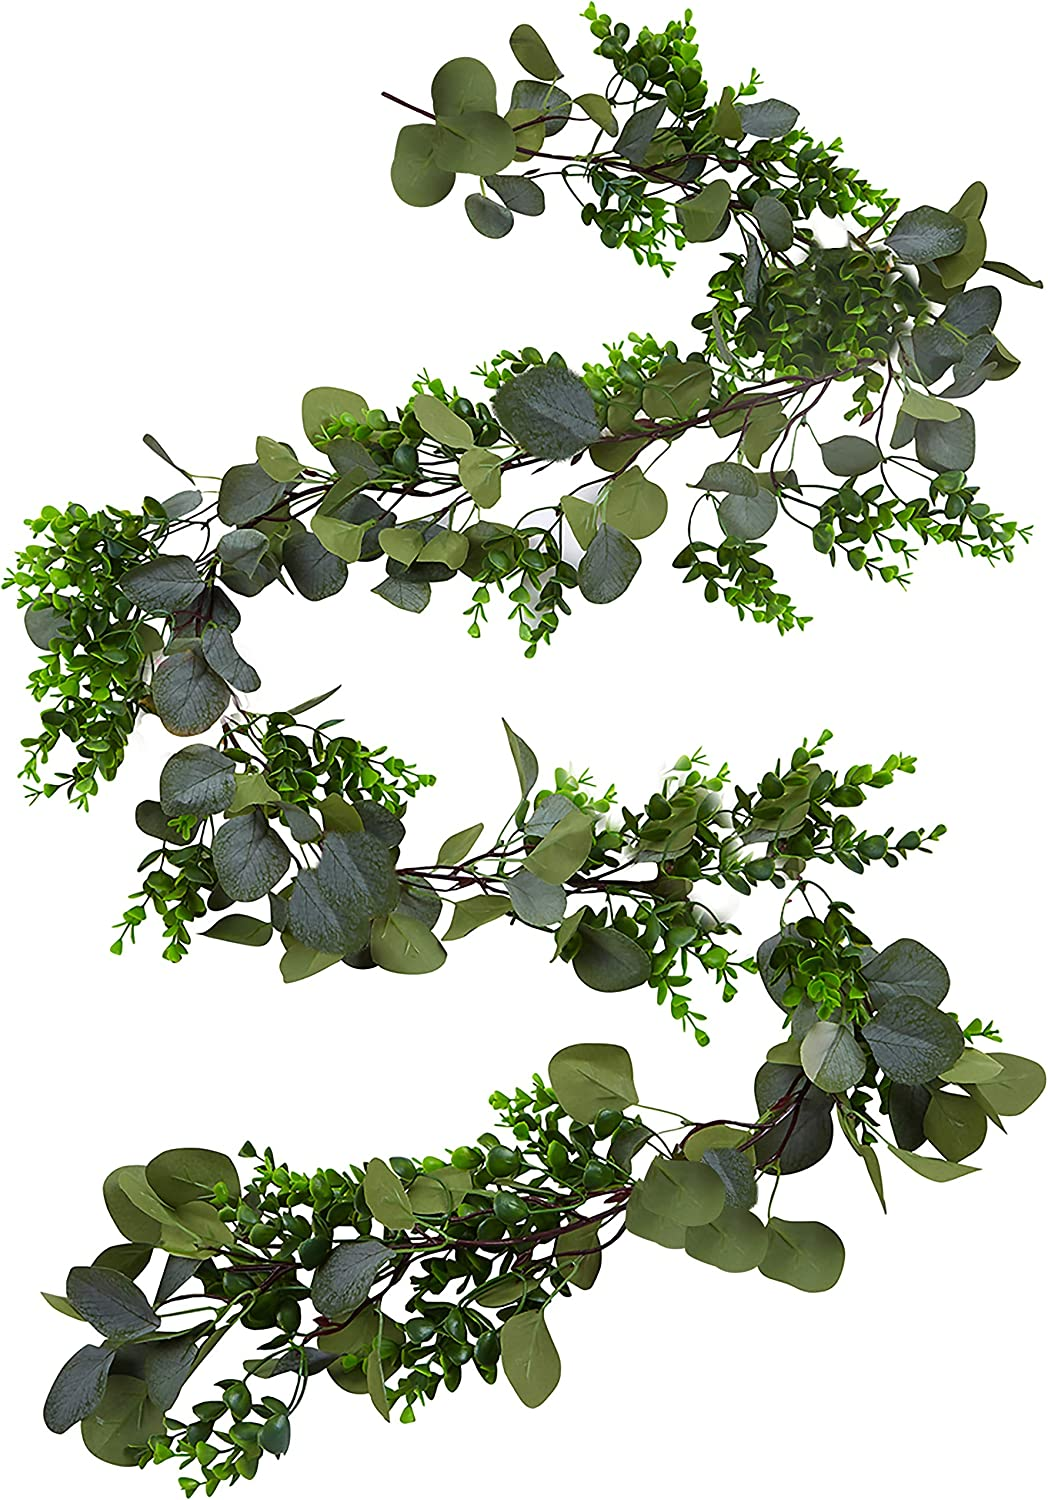 Faux Eucalyptus Garland – 6.10 Feet Fake Garland – Artificial Floral Greenery Garland Wedding for Arch, Fireplace, Mantel Décor, Rustic Home, Table Runner, Centerpiece – Olive and Eucalyptus Garland